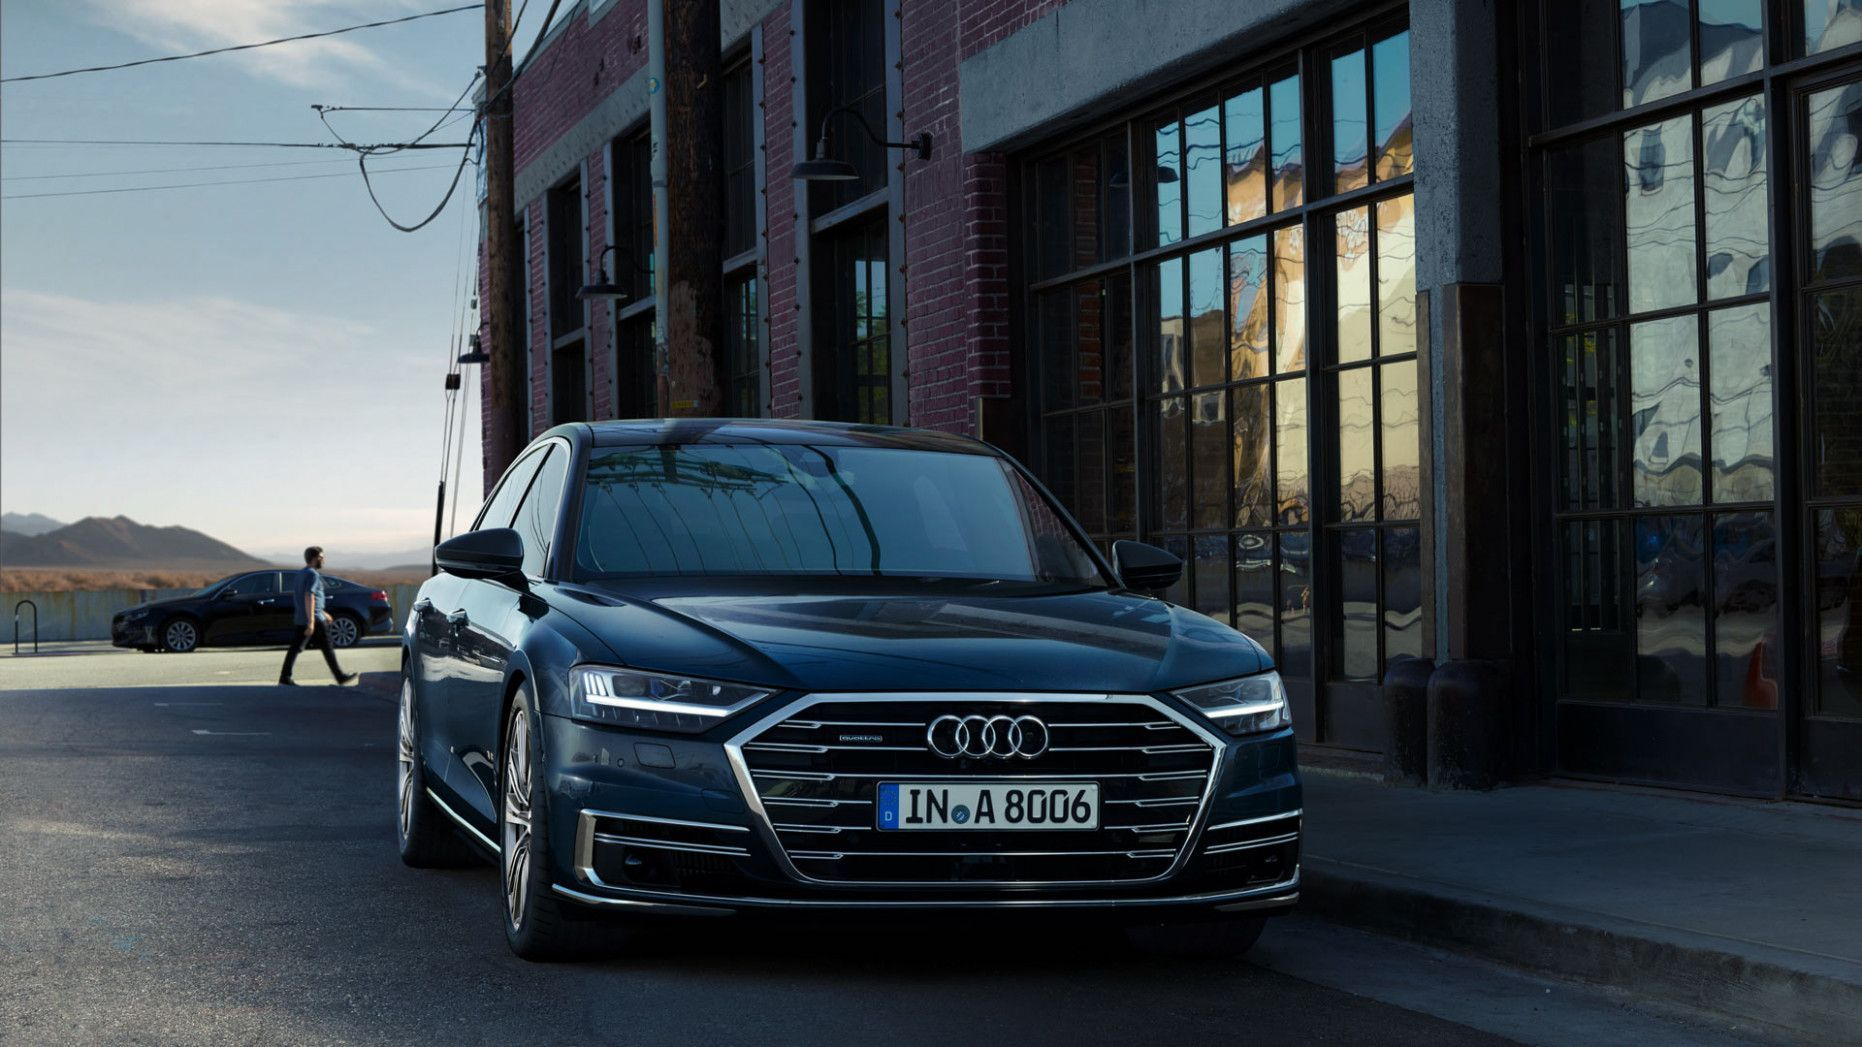 Audi A8 Review And Release Date Audi Date Release Review In 2020 Audi A8 Audi Audi For Sale